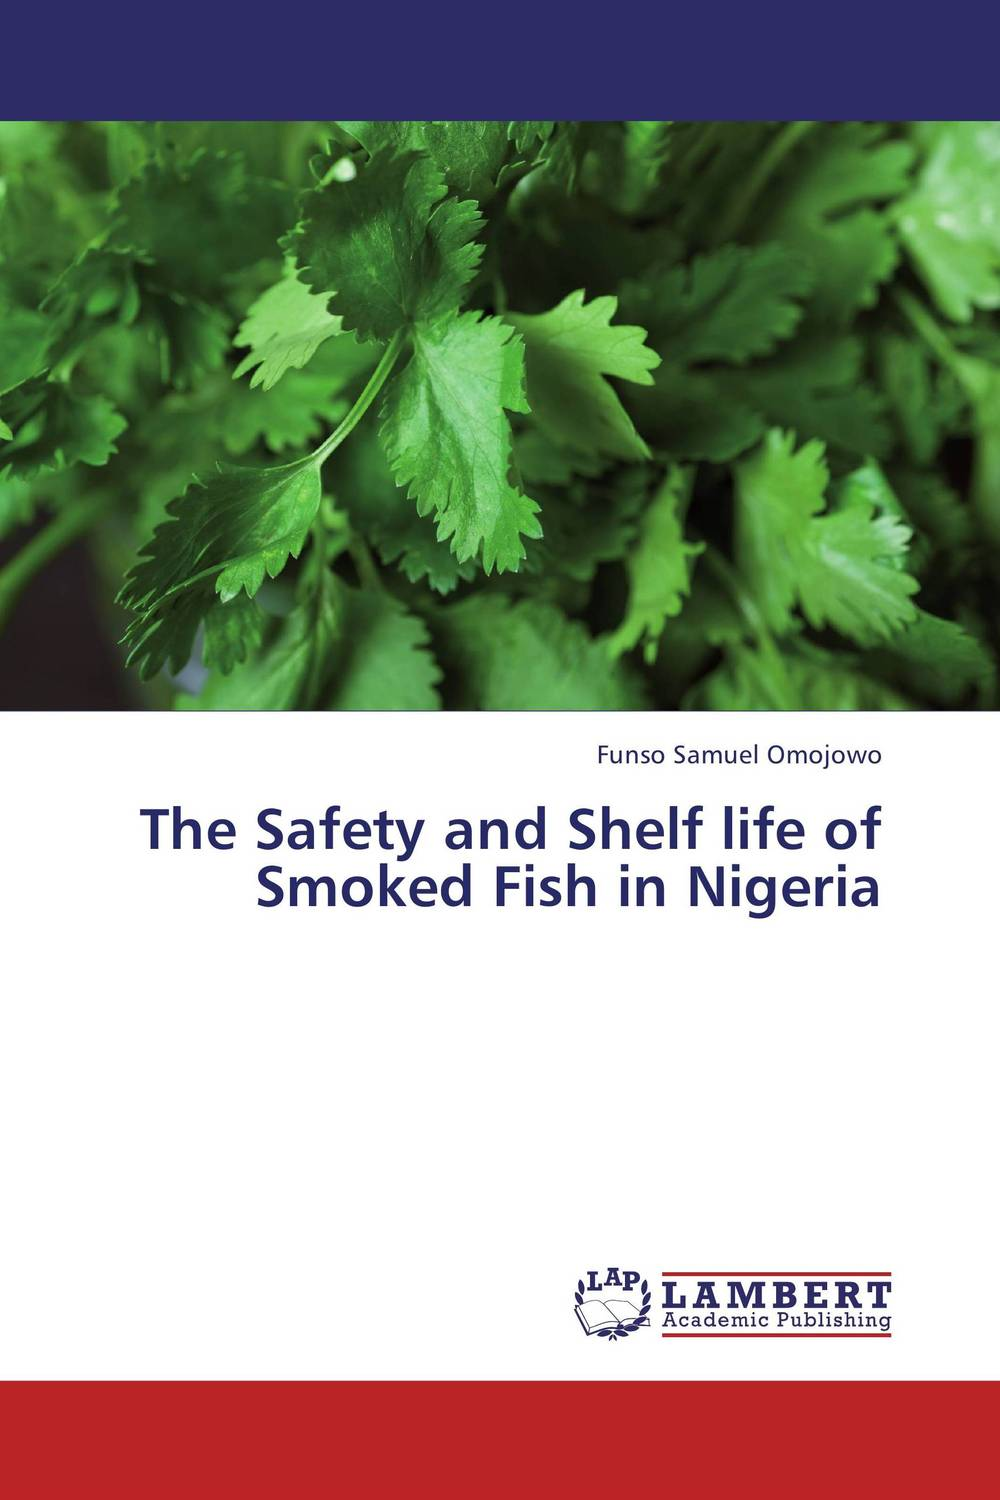 The Safety and Shelf life of Smoked Fish in Nigeria assessing the toxic effects of sodium metabisulphite